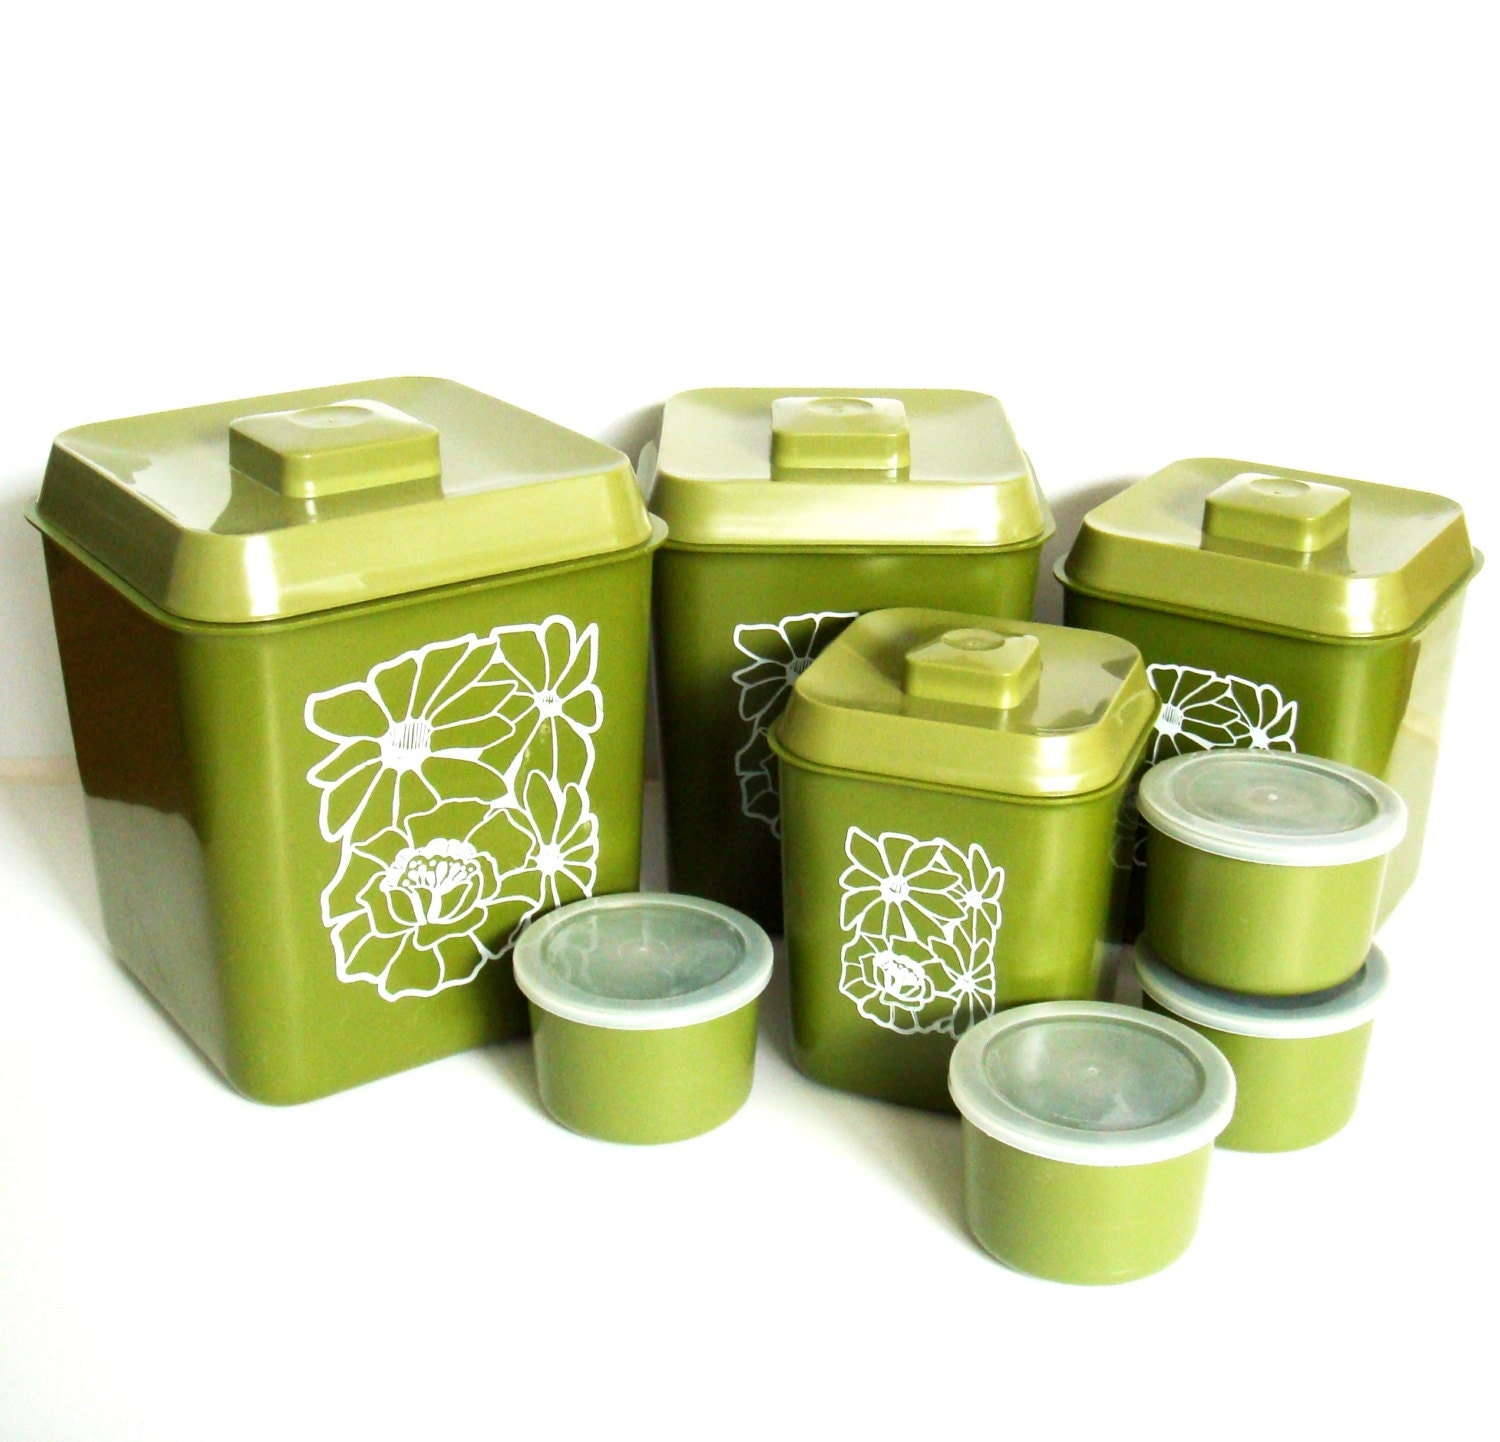 1970s avocado green canister set retro kitchen canisters with for Kitchen 87 mount holly nj